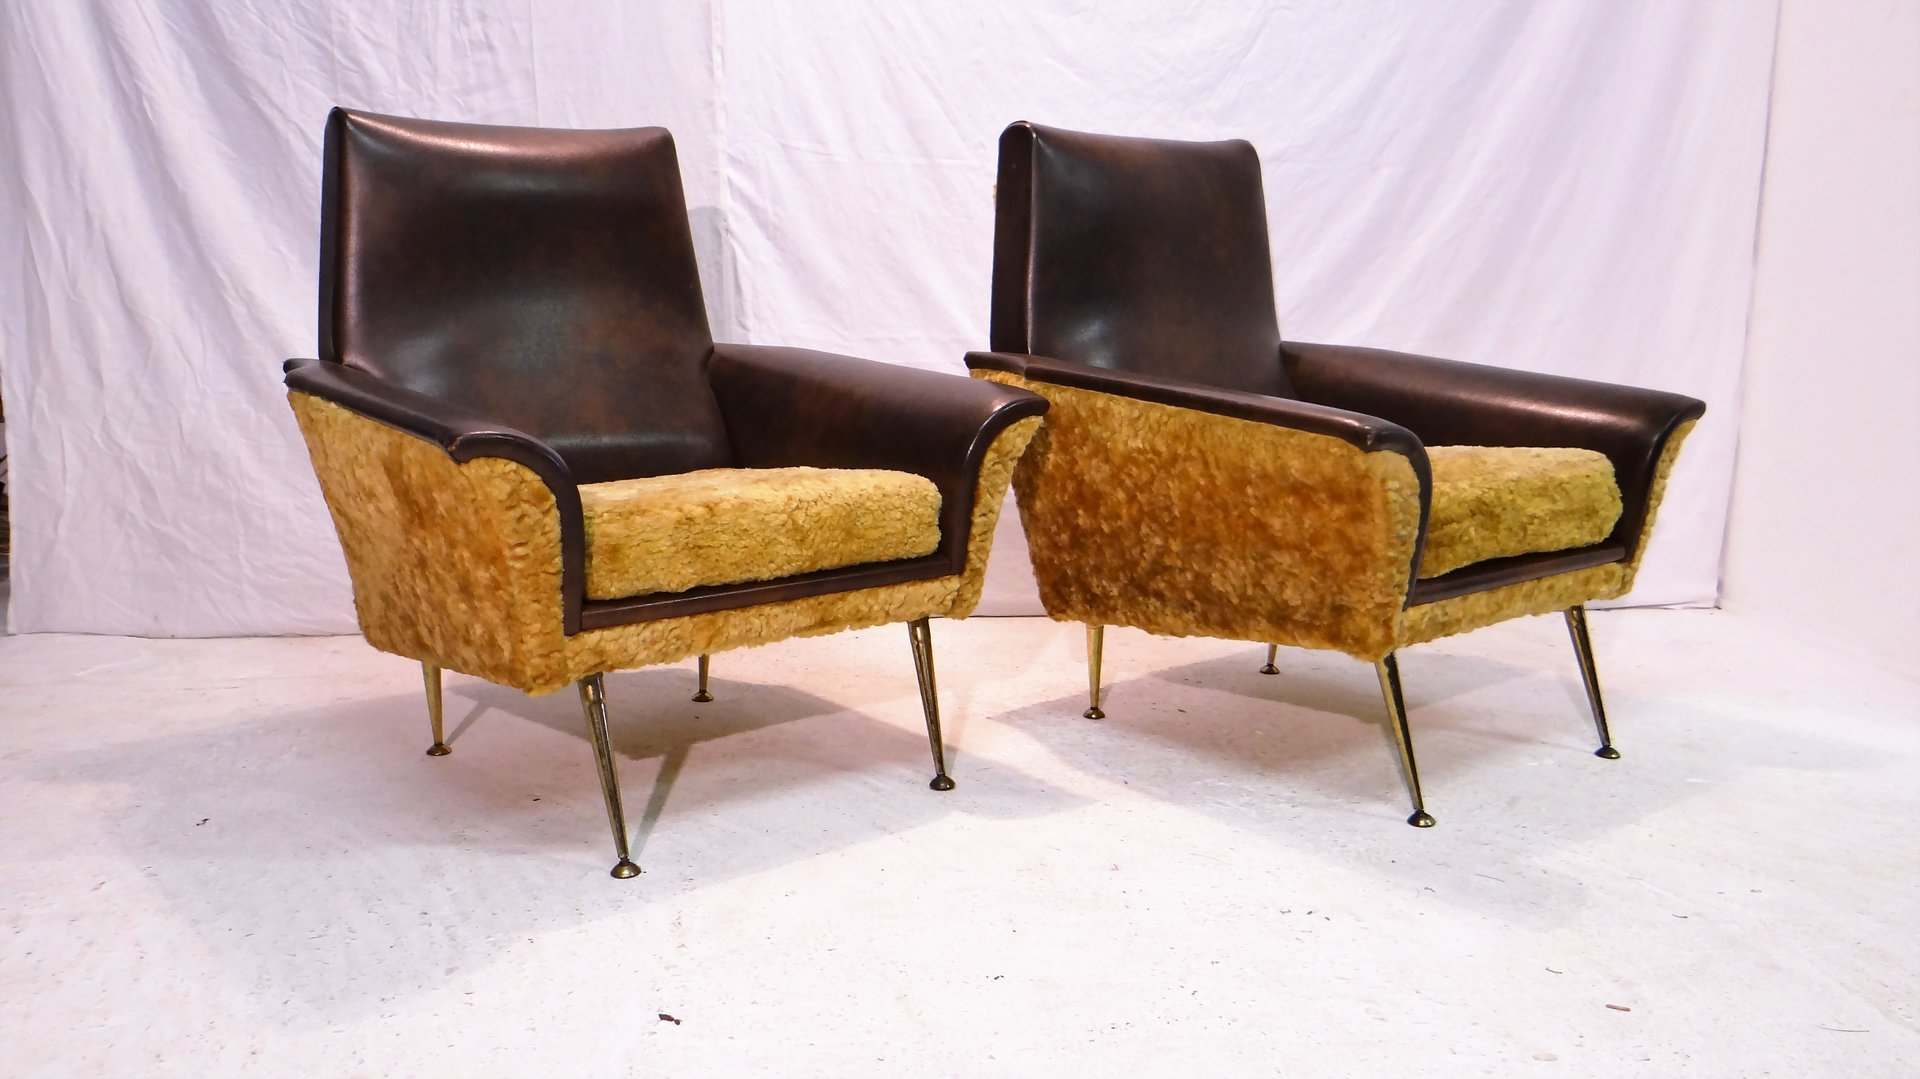 Italian Vinyl & Wool Lounge Chairs 1950s Set of 2 for sale at Pamono